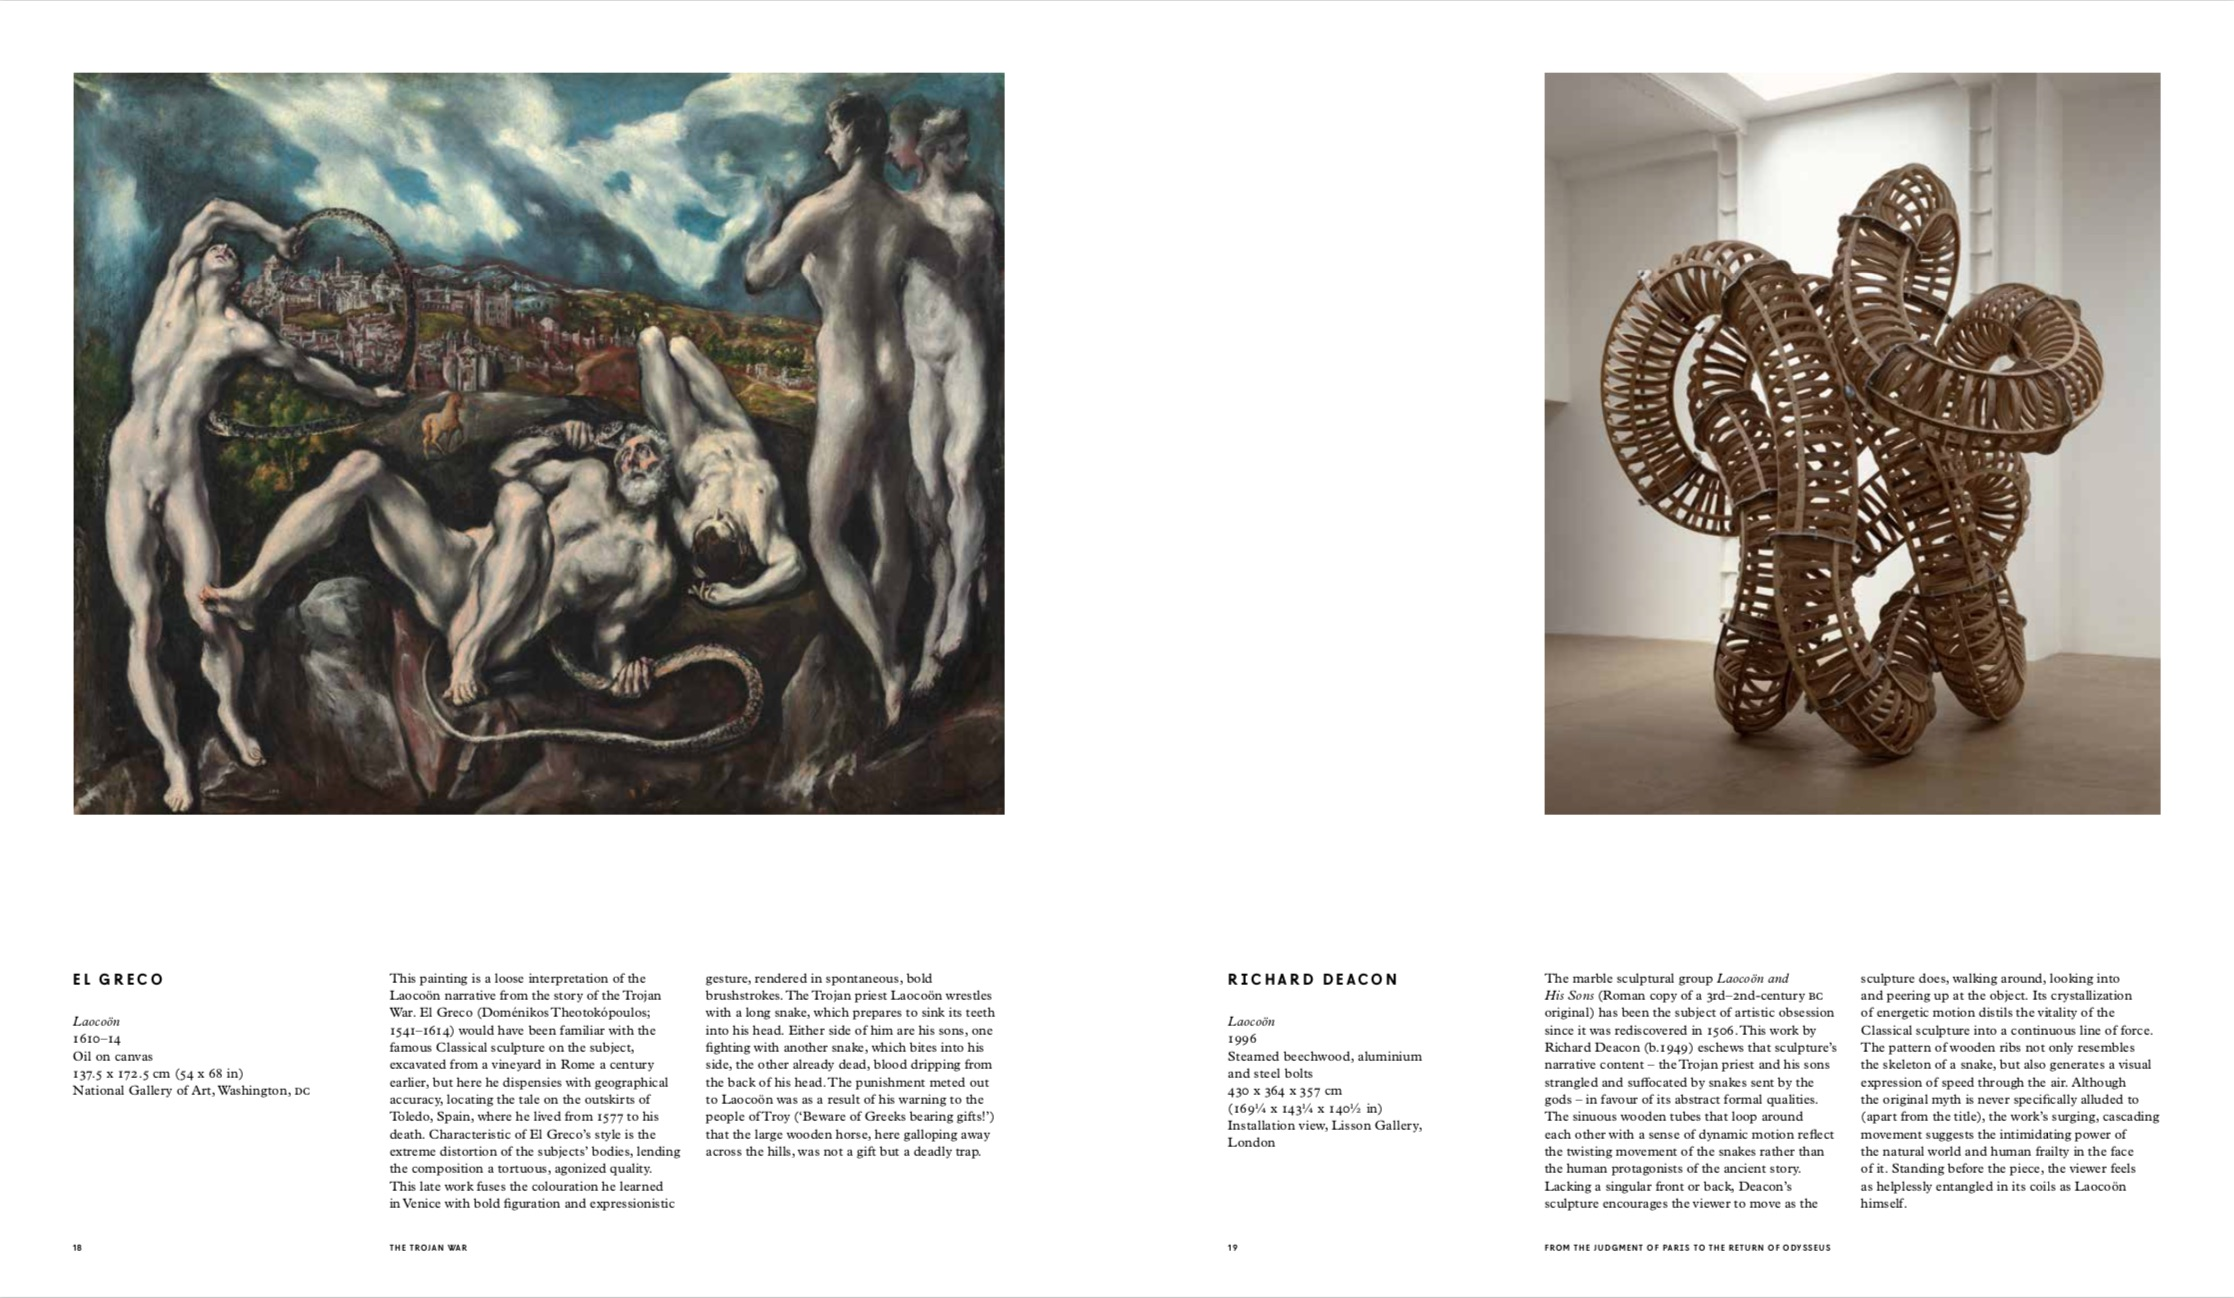 By James Cahill from Flying Too Close to the Sun: Myths in Art from Classical to Contemporary copyright Phaidon 2018